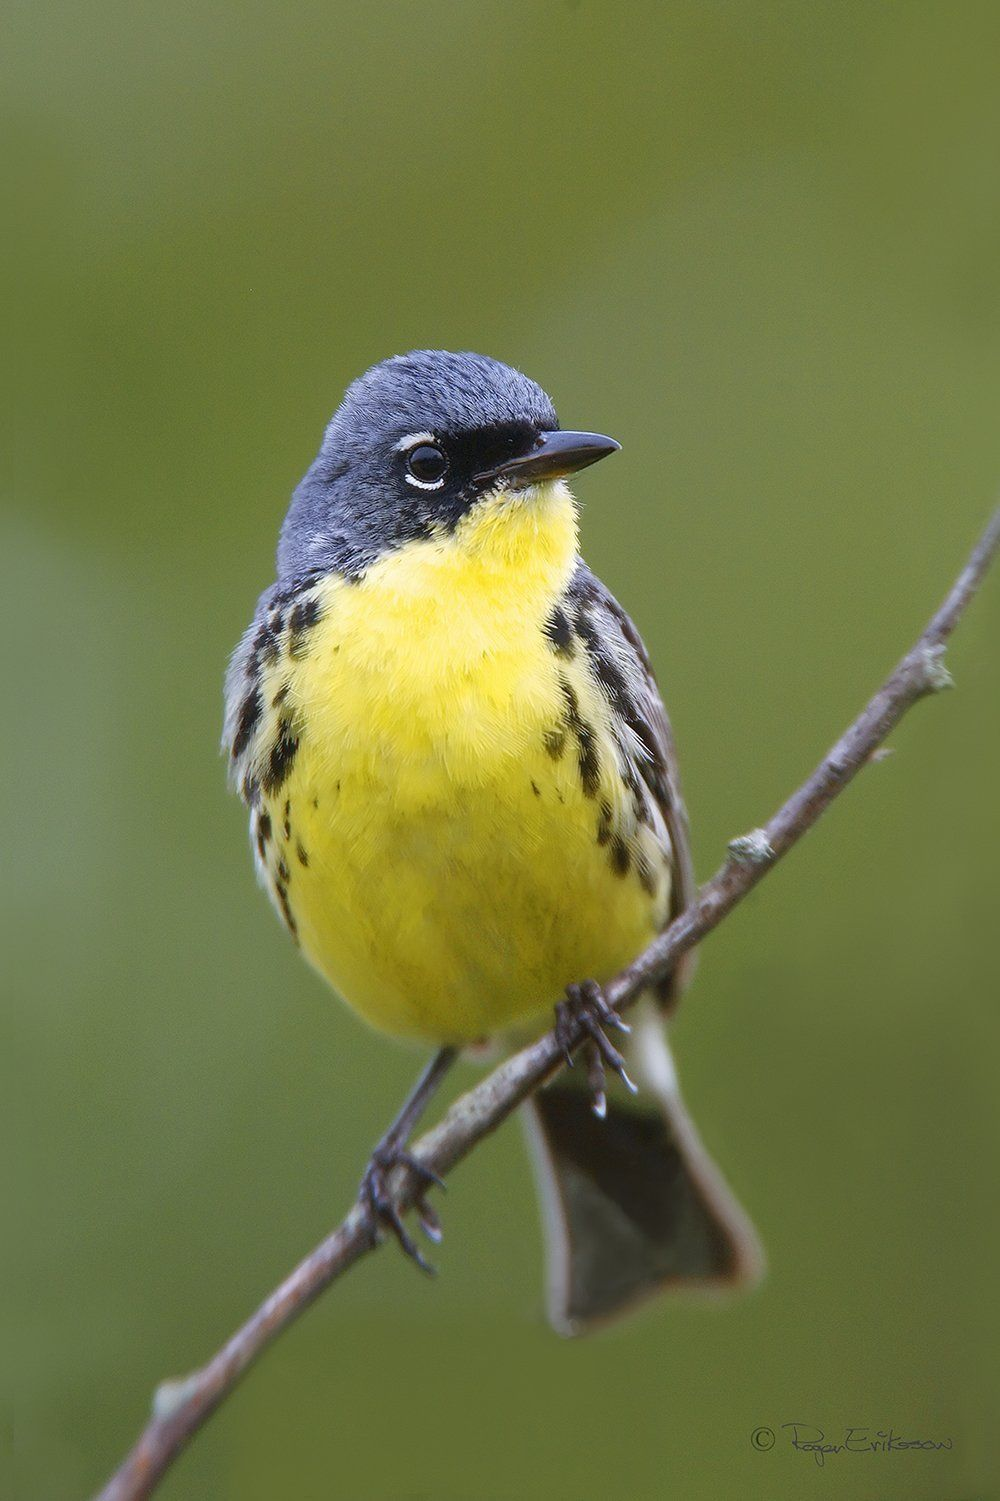 Once near extinction, Michigan's Kirtland's warbler bird comes off endangered list